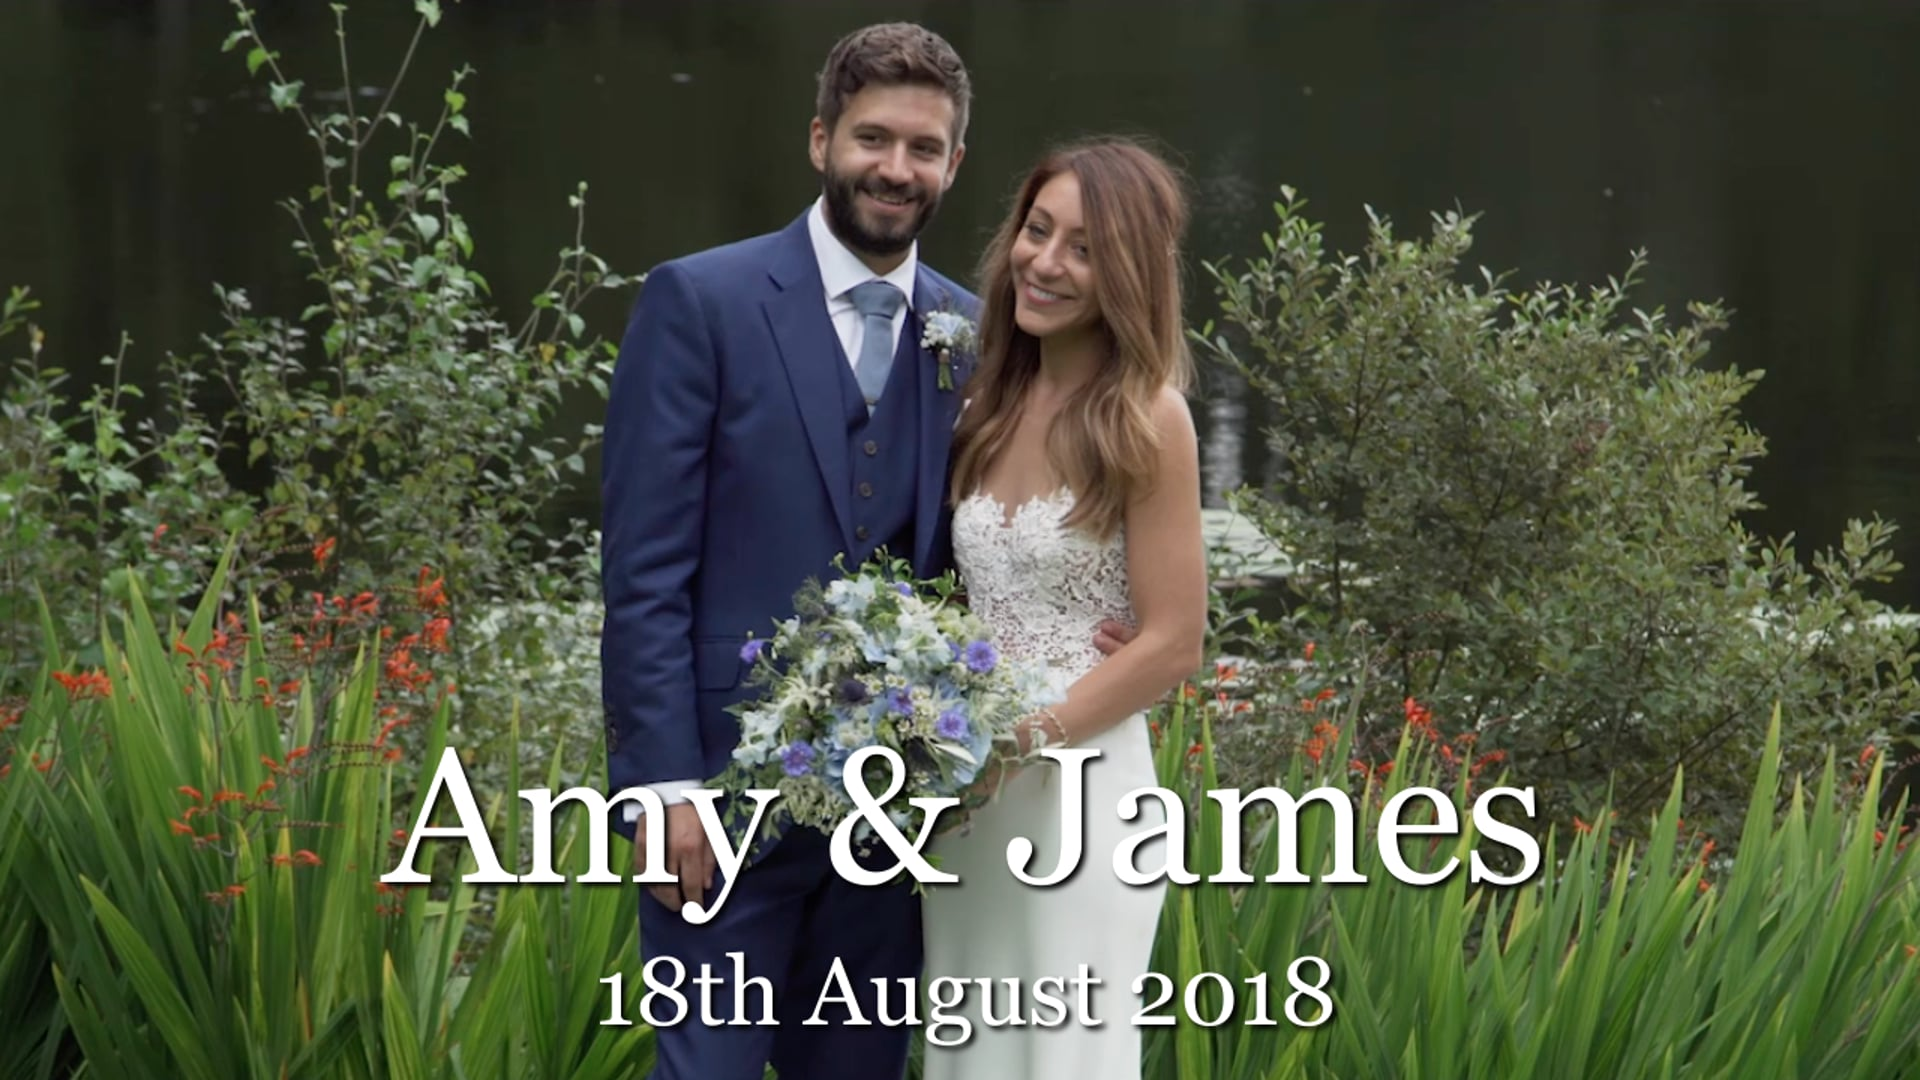 Amy & James' Wedding Film | Gilpin Lake House - Bowness-on-Windermere